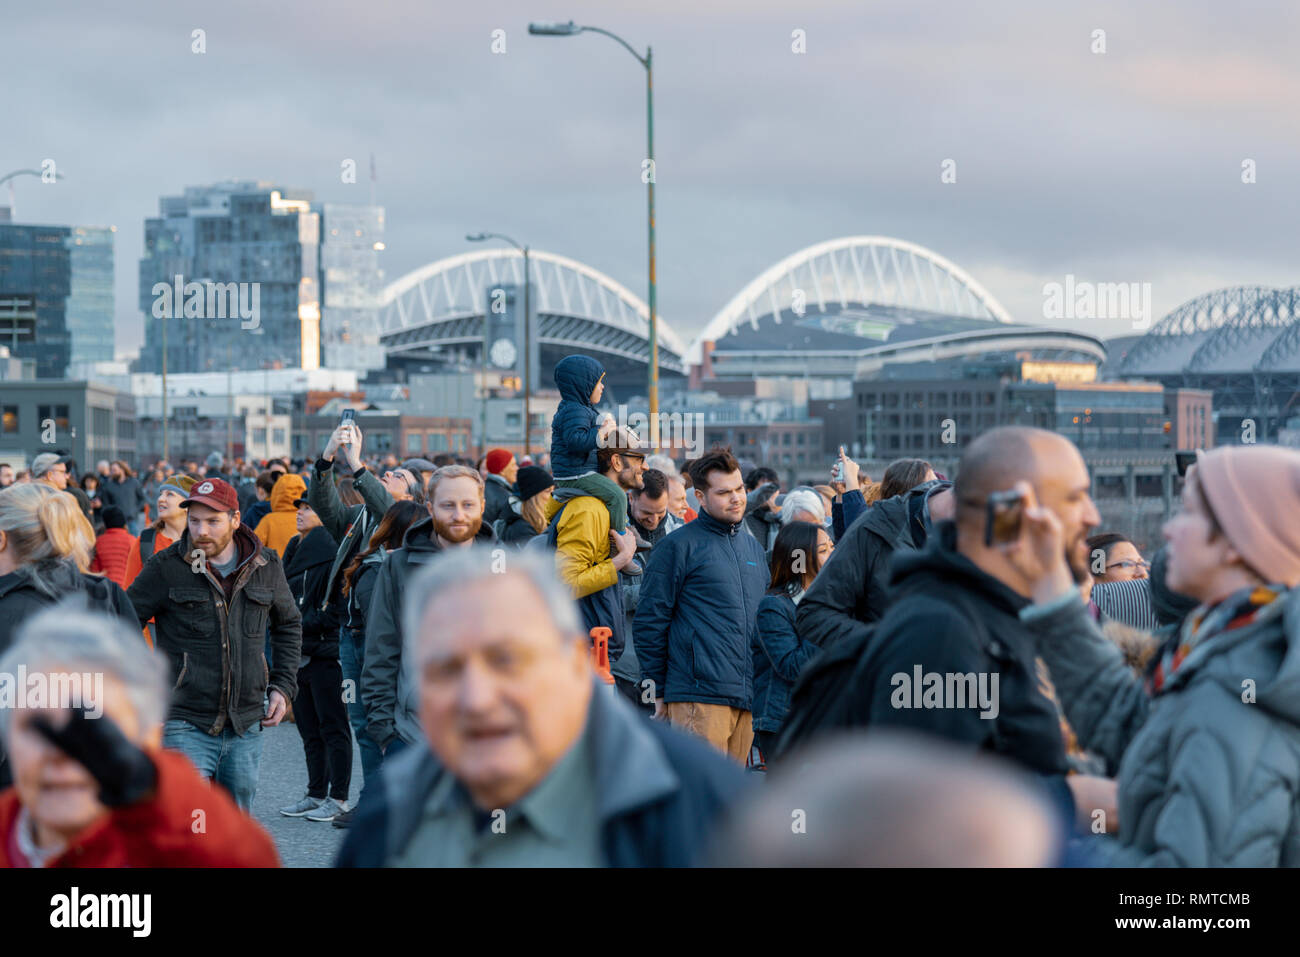 The last night people were allowed to walk the Alaska way viaduct that's being torn down now that the tunnel is complete. Diverse people, families. - Stock Image